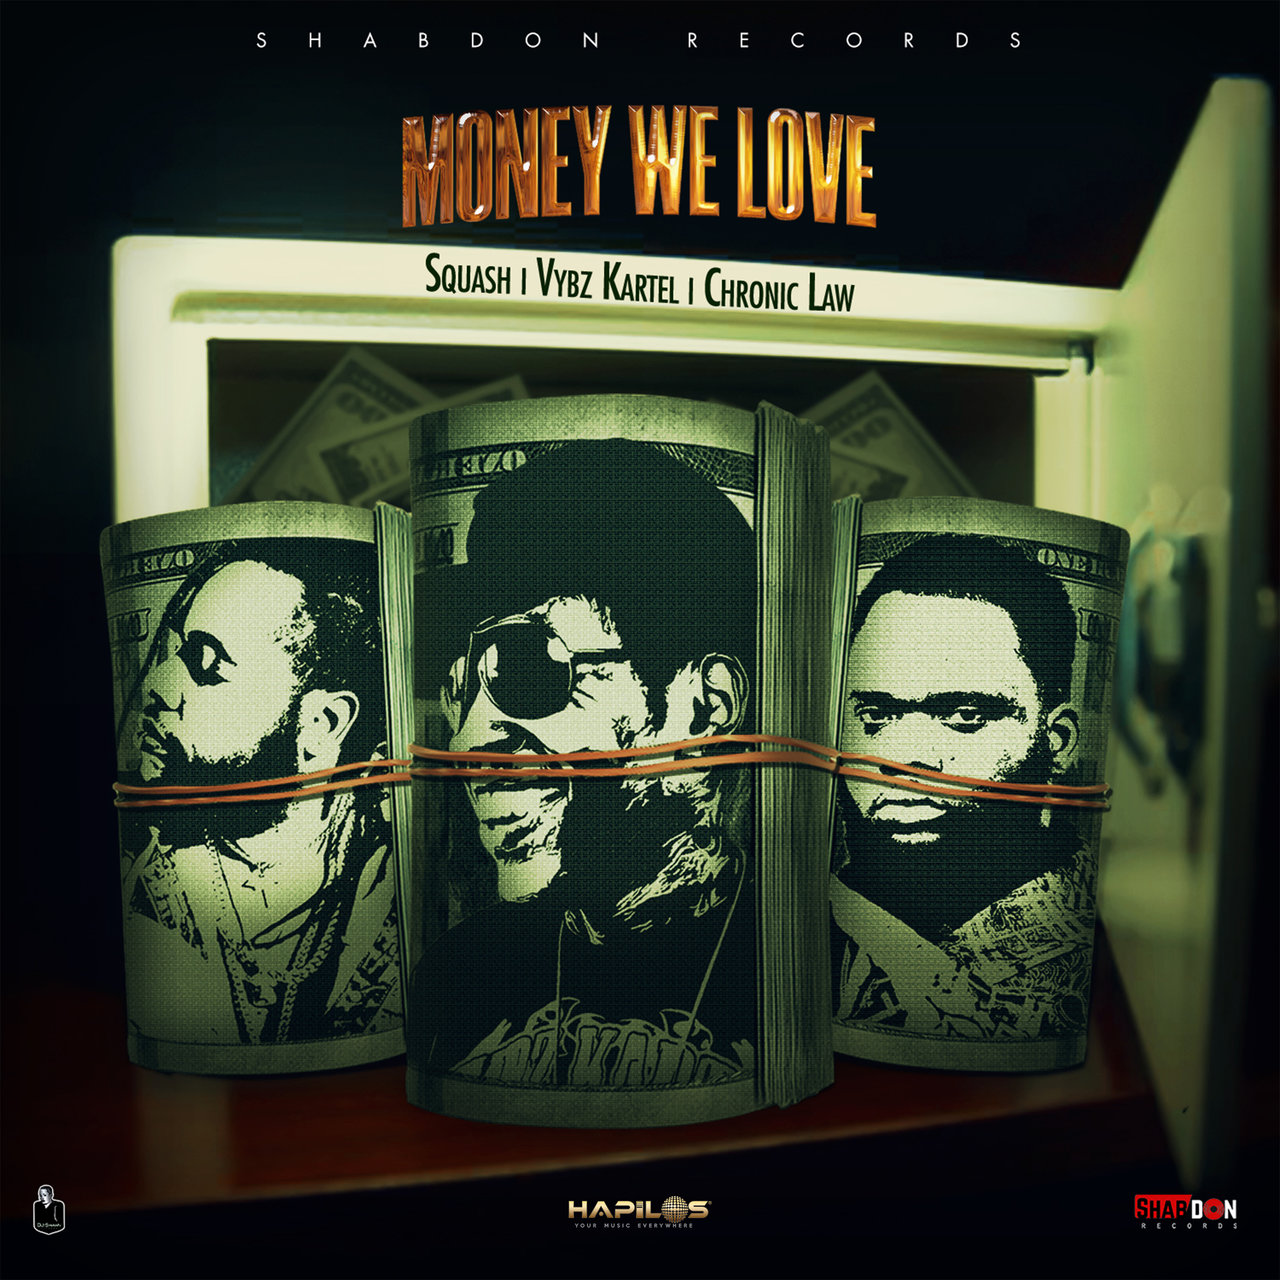 Squash, Vybz Kartel and Chronic Law - Money We Love (Cover)